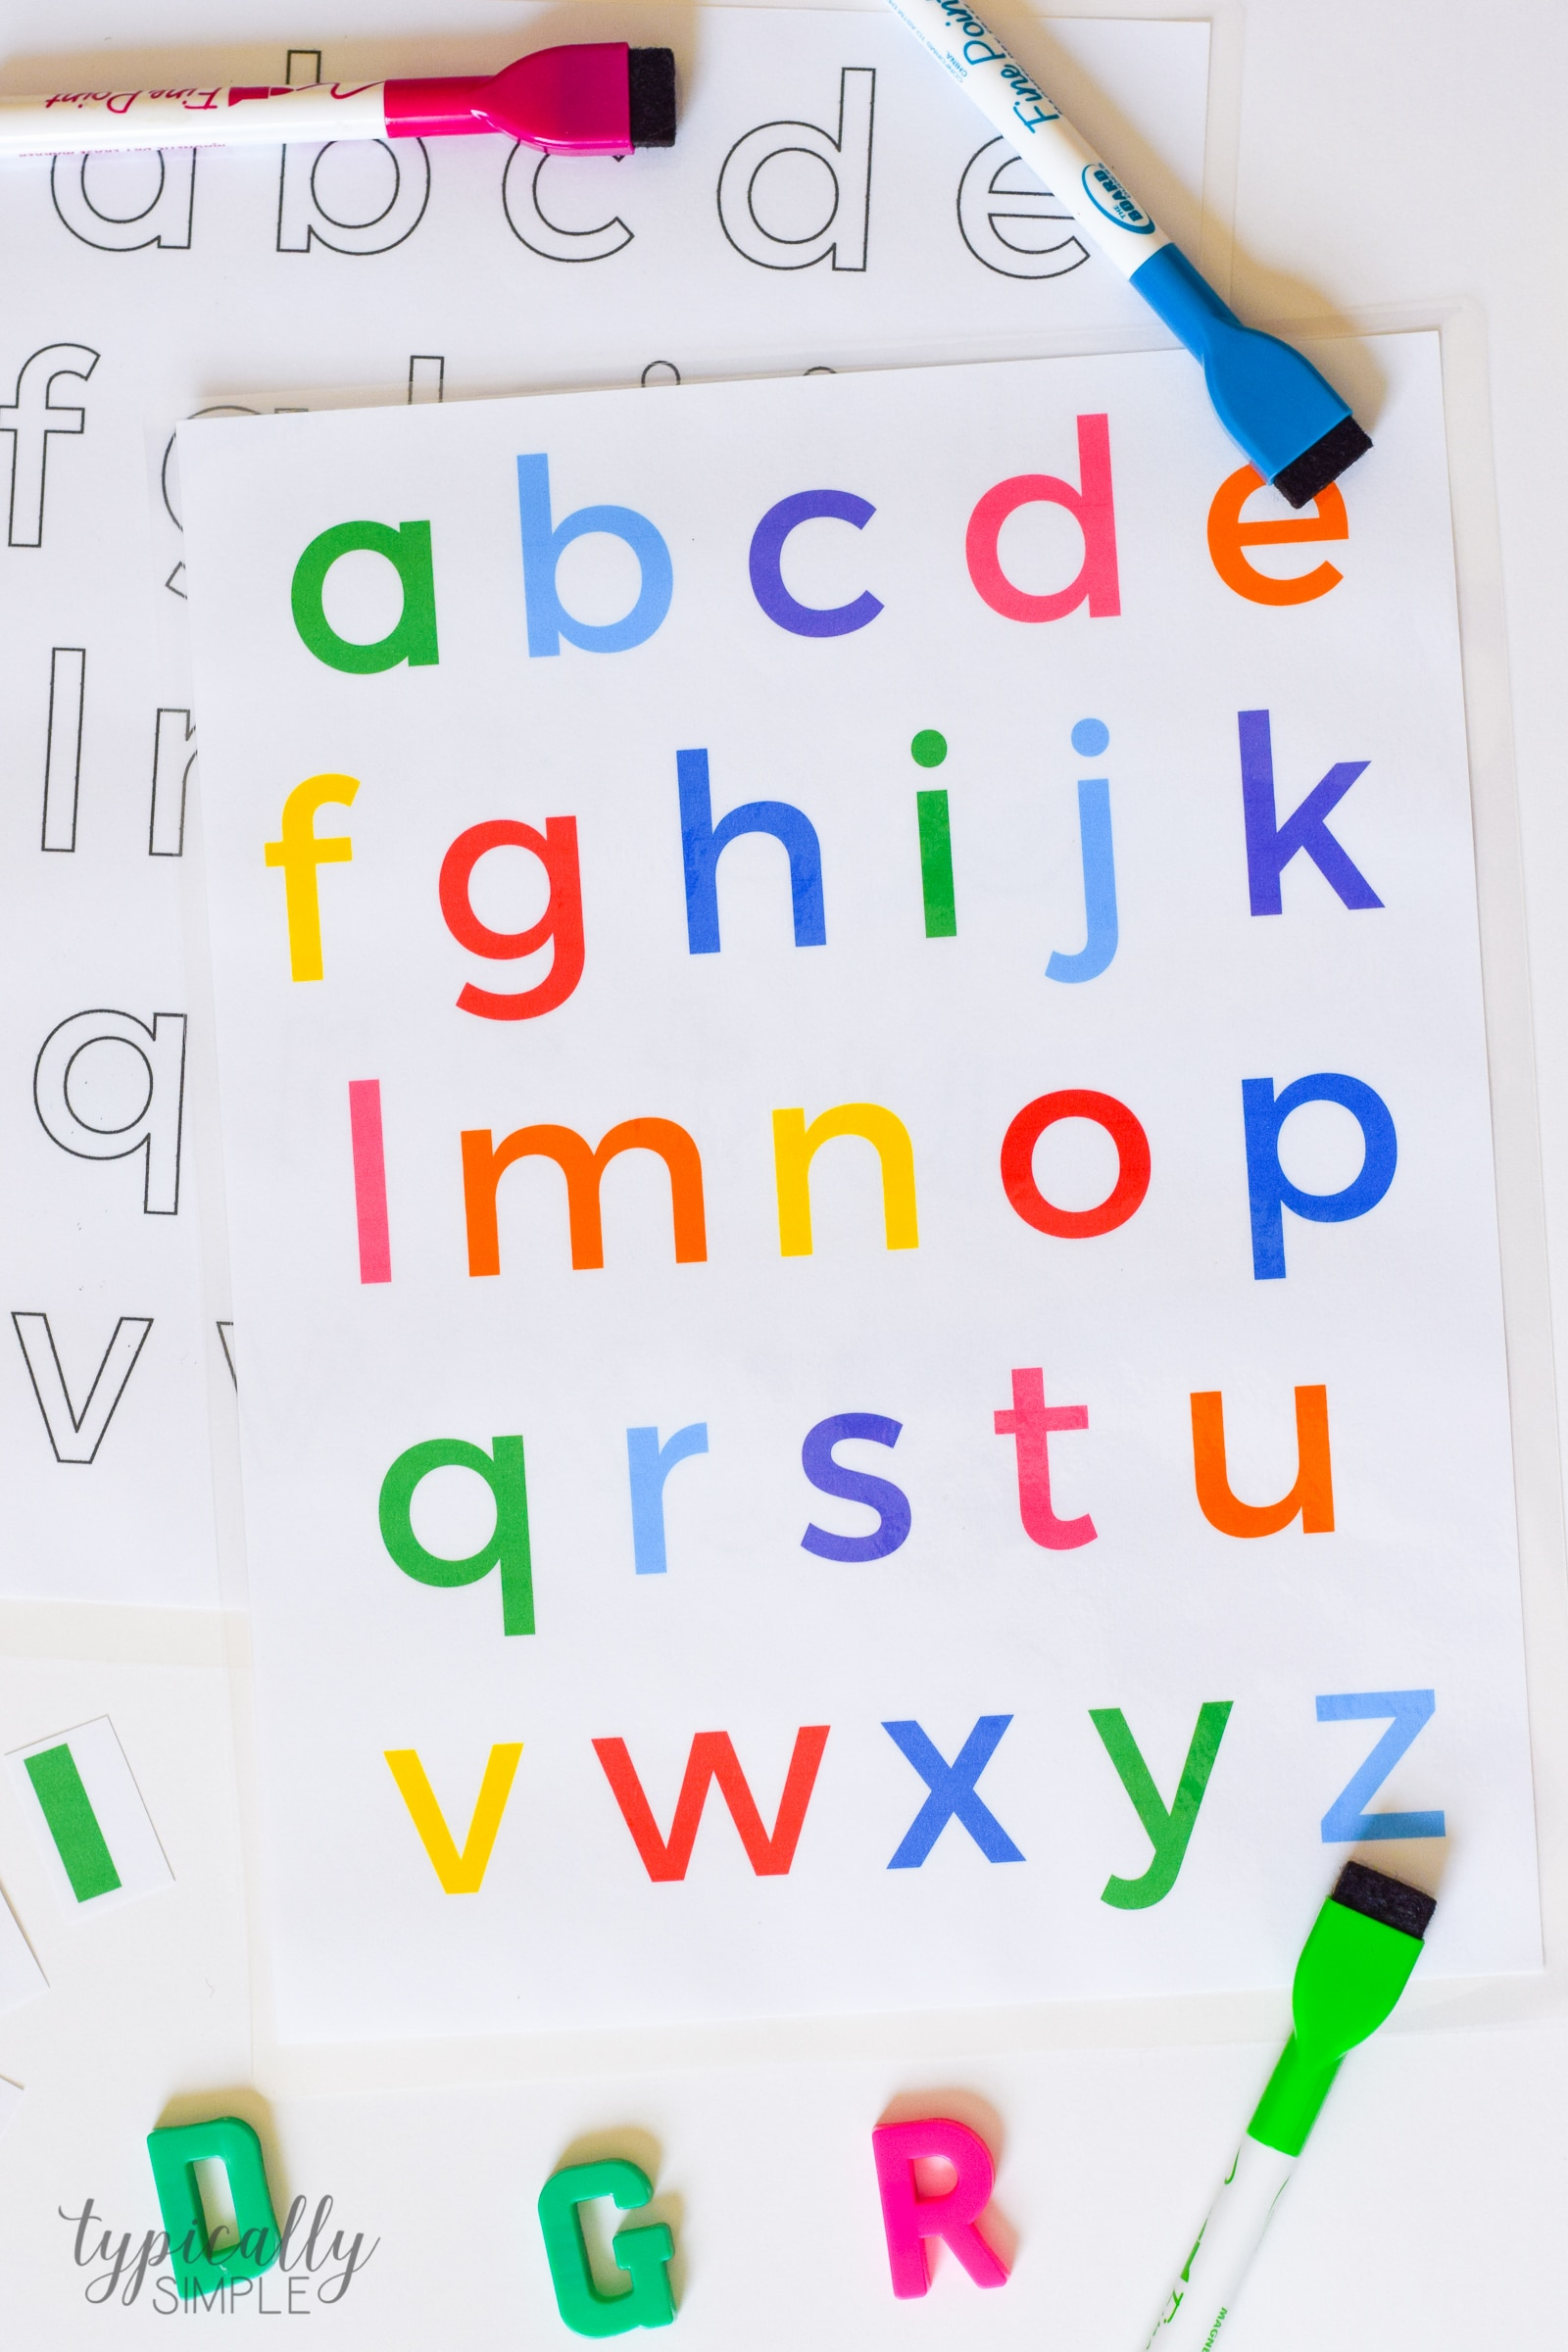 photograph about Free Printable Lower Case Letters titled Alphabet Routines: Lowercase Letters Printable - Ordinarily